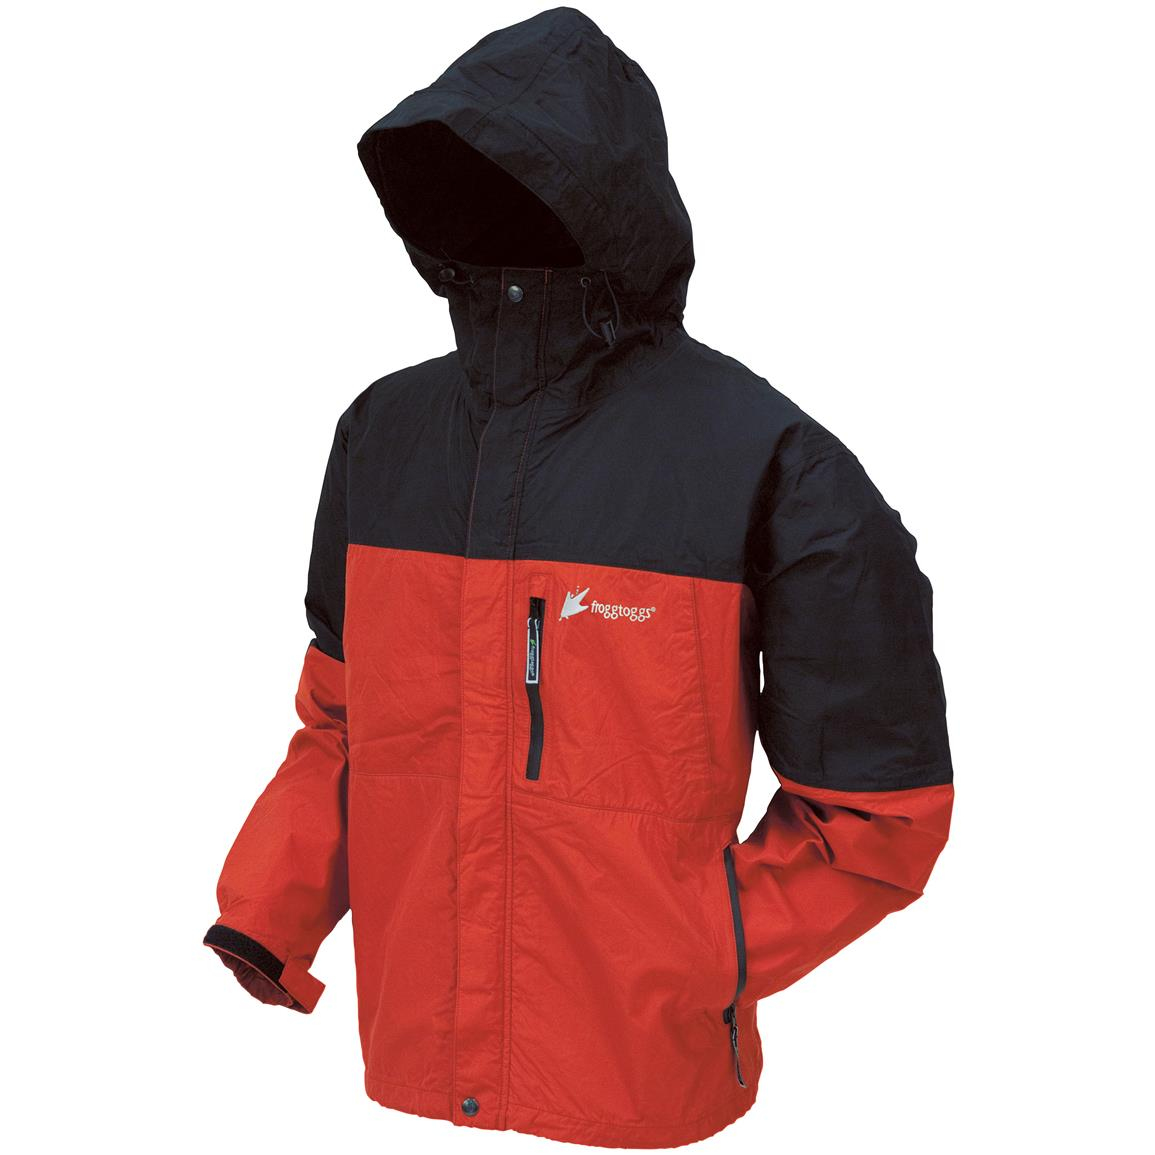 frogg toggs ToadRage Rain Jacket, Red / Black